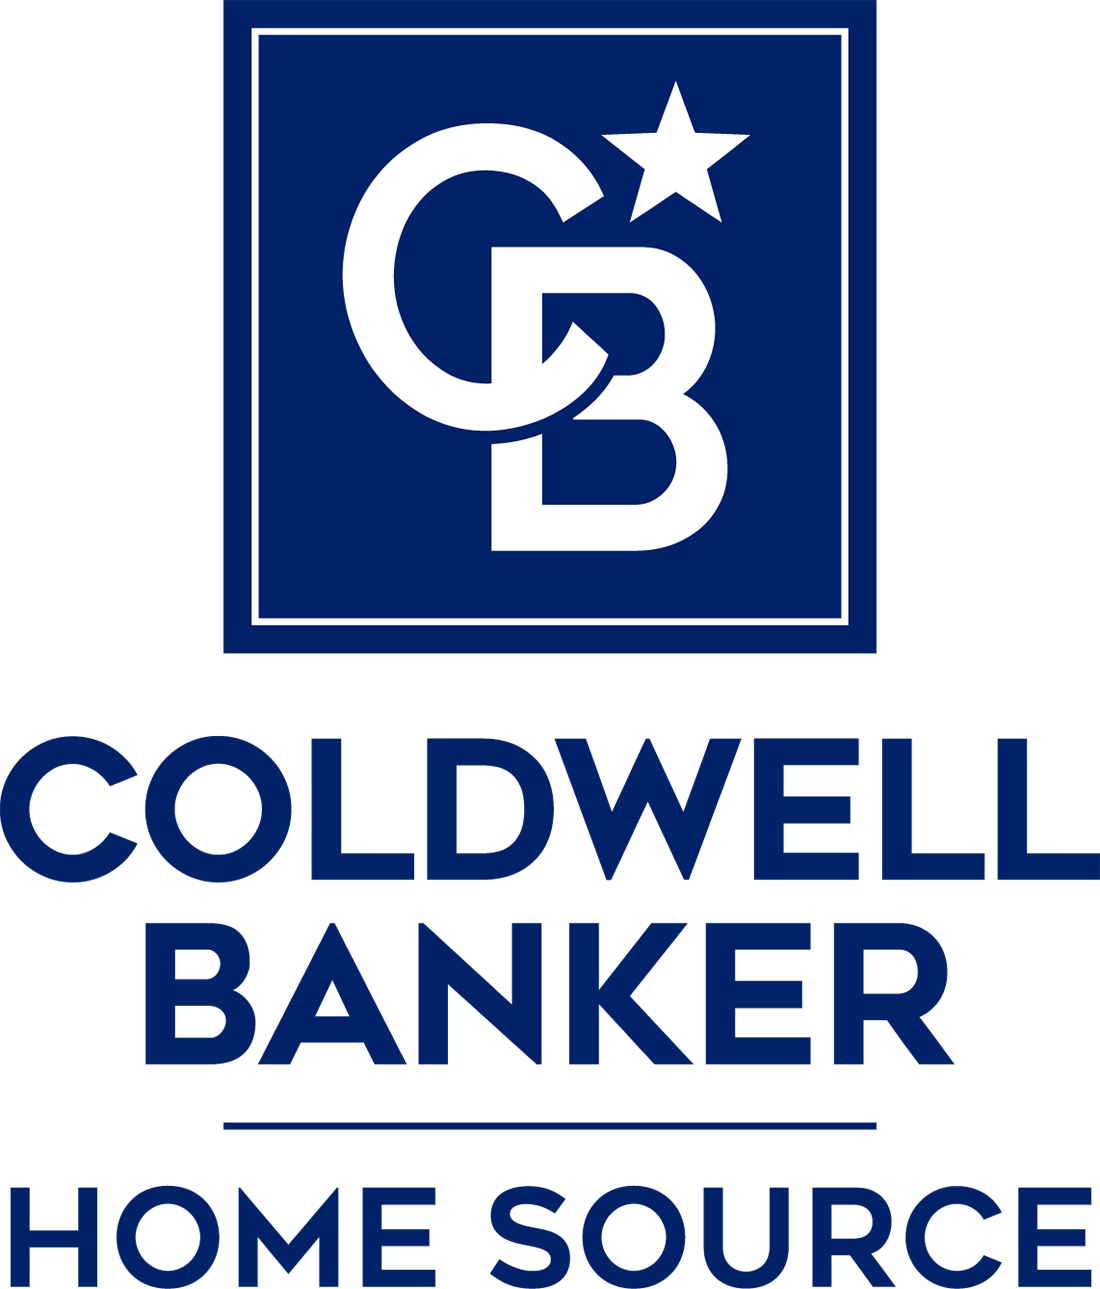 Thomas Allen - Coldwell Banker Home Source Logo